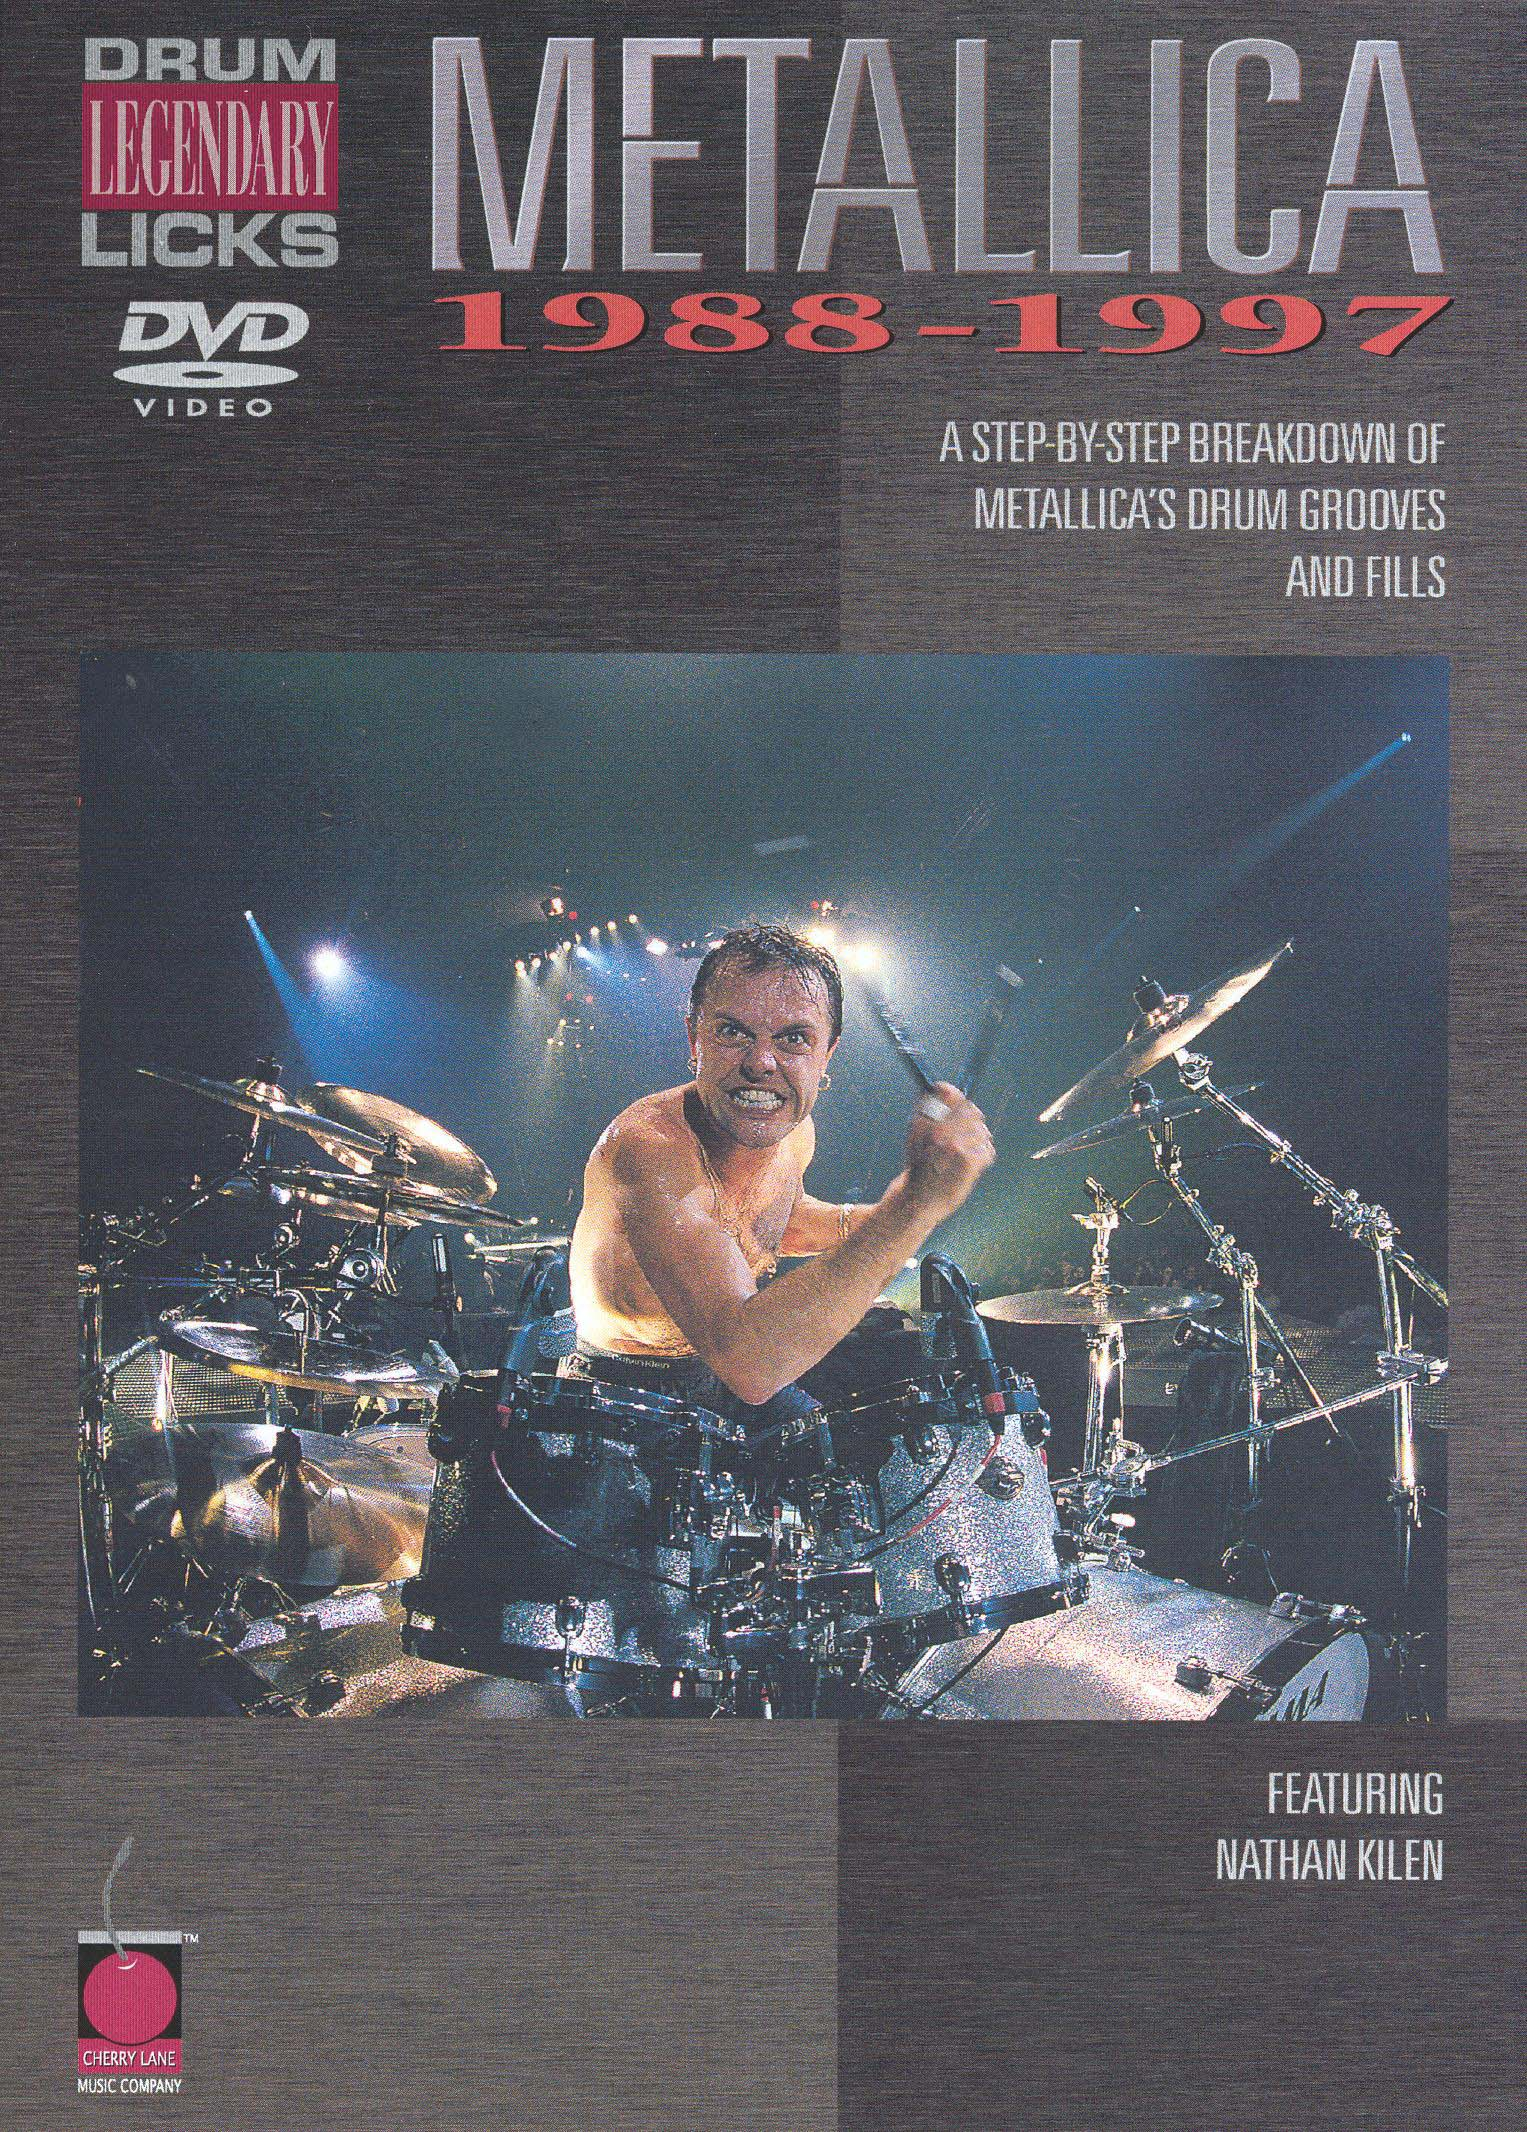 Metallica: Legendary Licks - Drum, 1988-1997